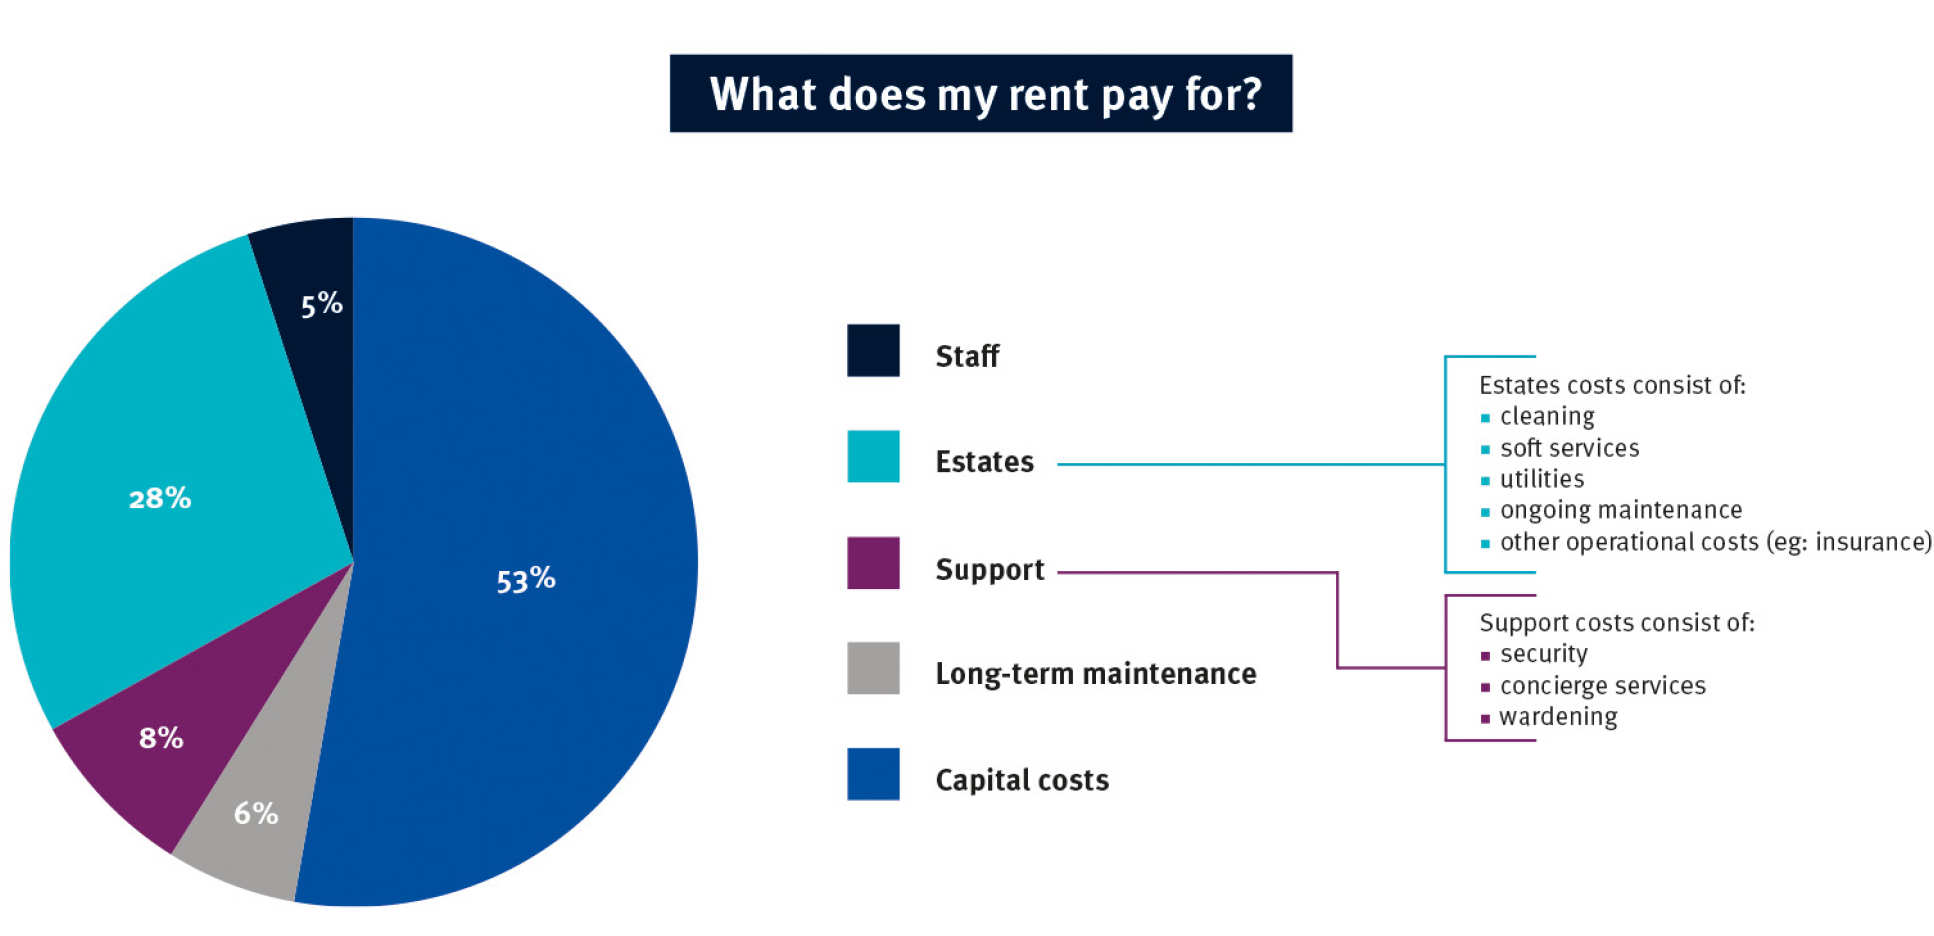 What does my rent pay for. 5% staff 28% estates 8% support 6% long-term maintenance 53% capital costs